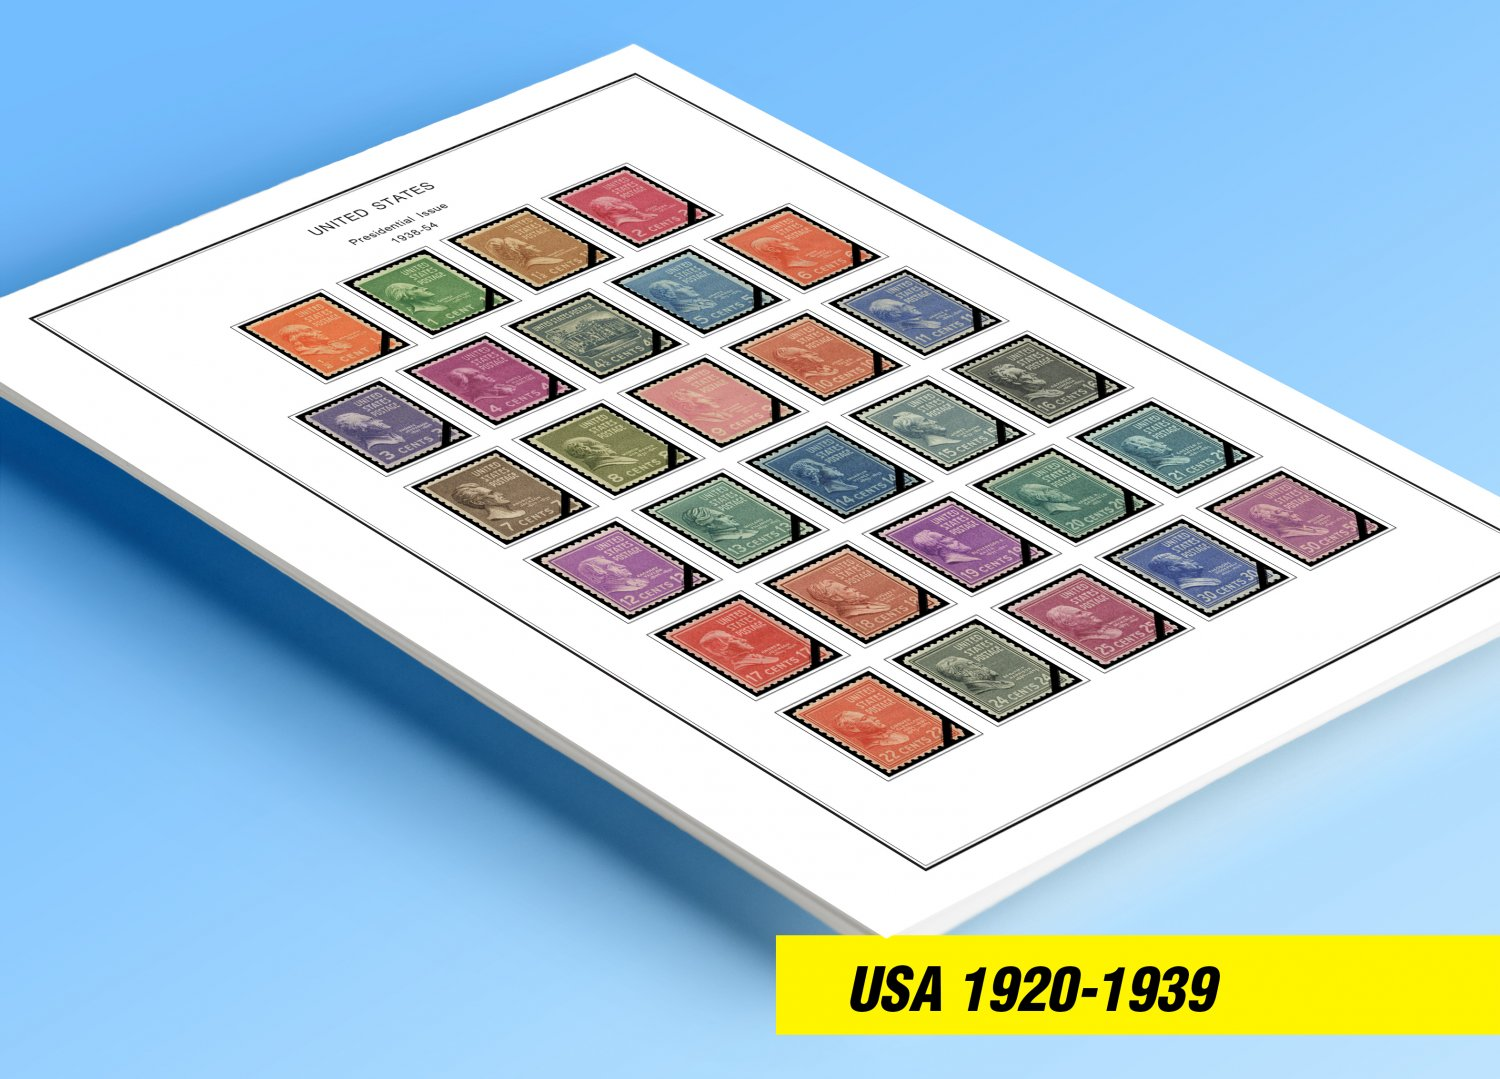 COLOR PRINTED U.S.A. 1920-1939 STAMP ALBUM PAGES (29 illustrated pages)